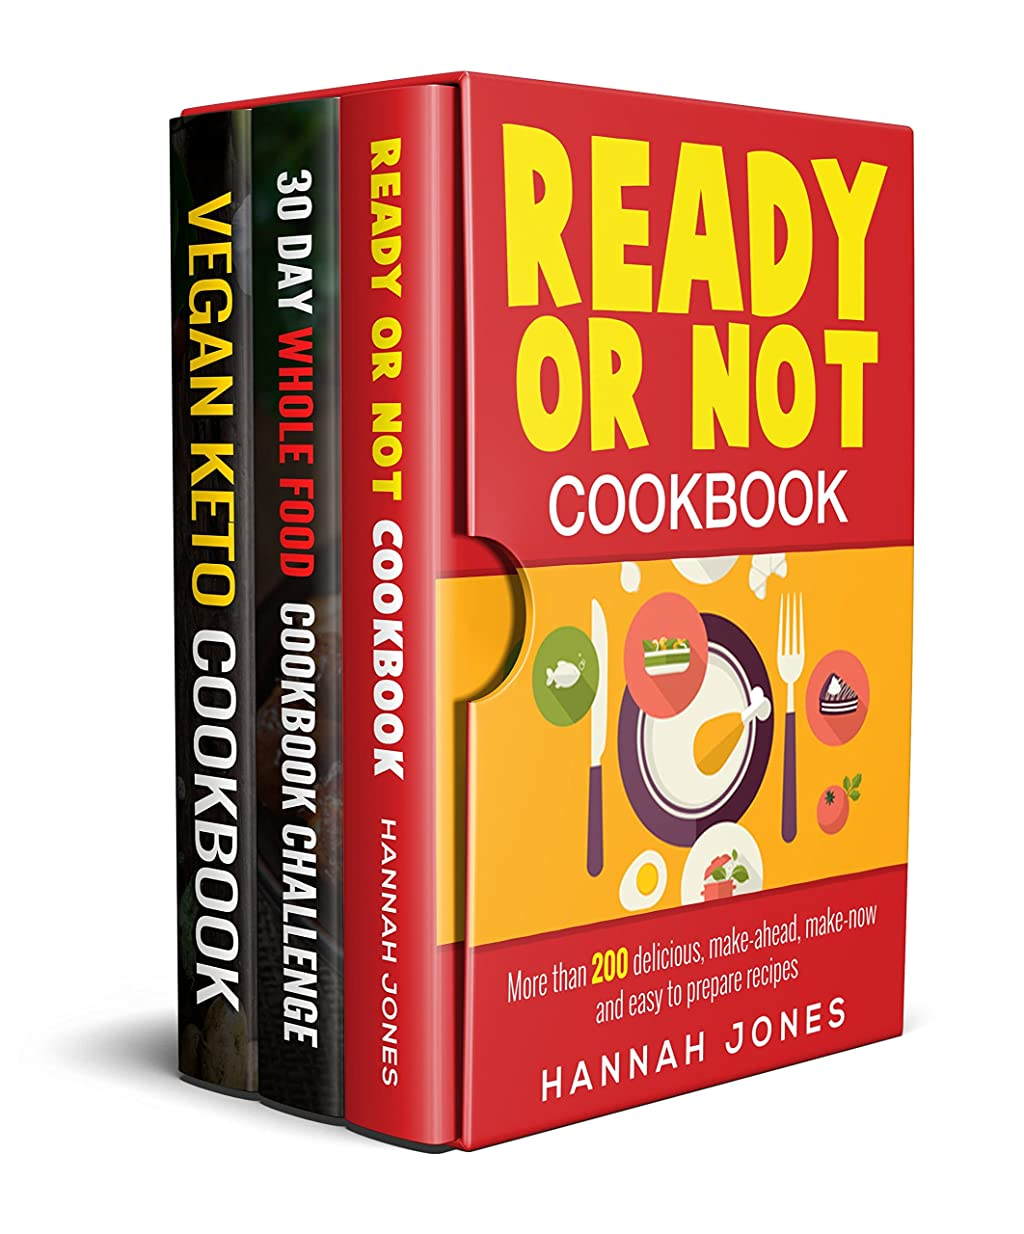 Ready Or Not, 30 Day Challenge, Fat as Fuel: 3 Healthy Cookbooks Super Pack Collection: Over 500 Proven, Delicious & Easy to Make Recipes for Weight Loss & Supercharging Your Health (English Edition)